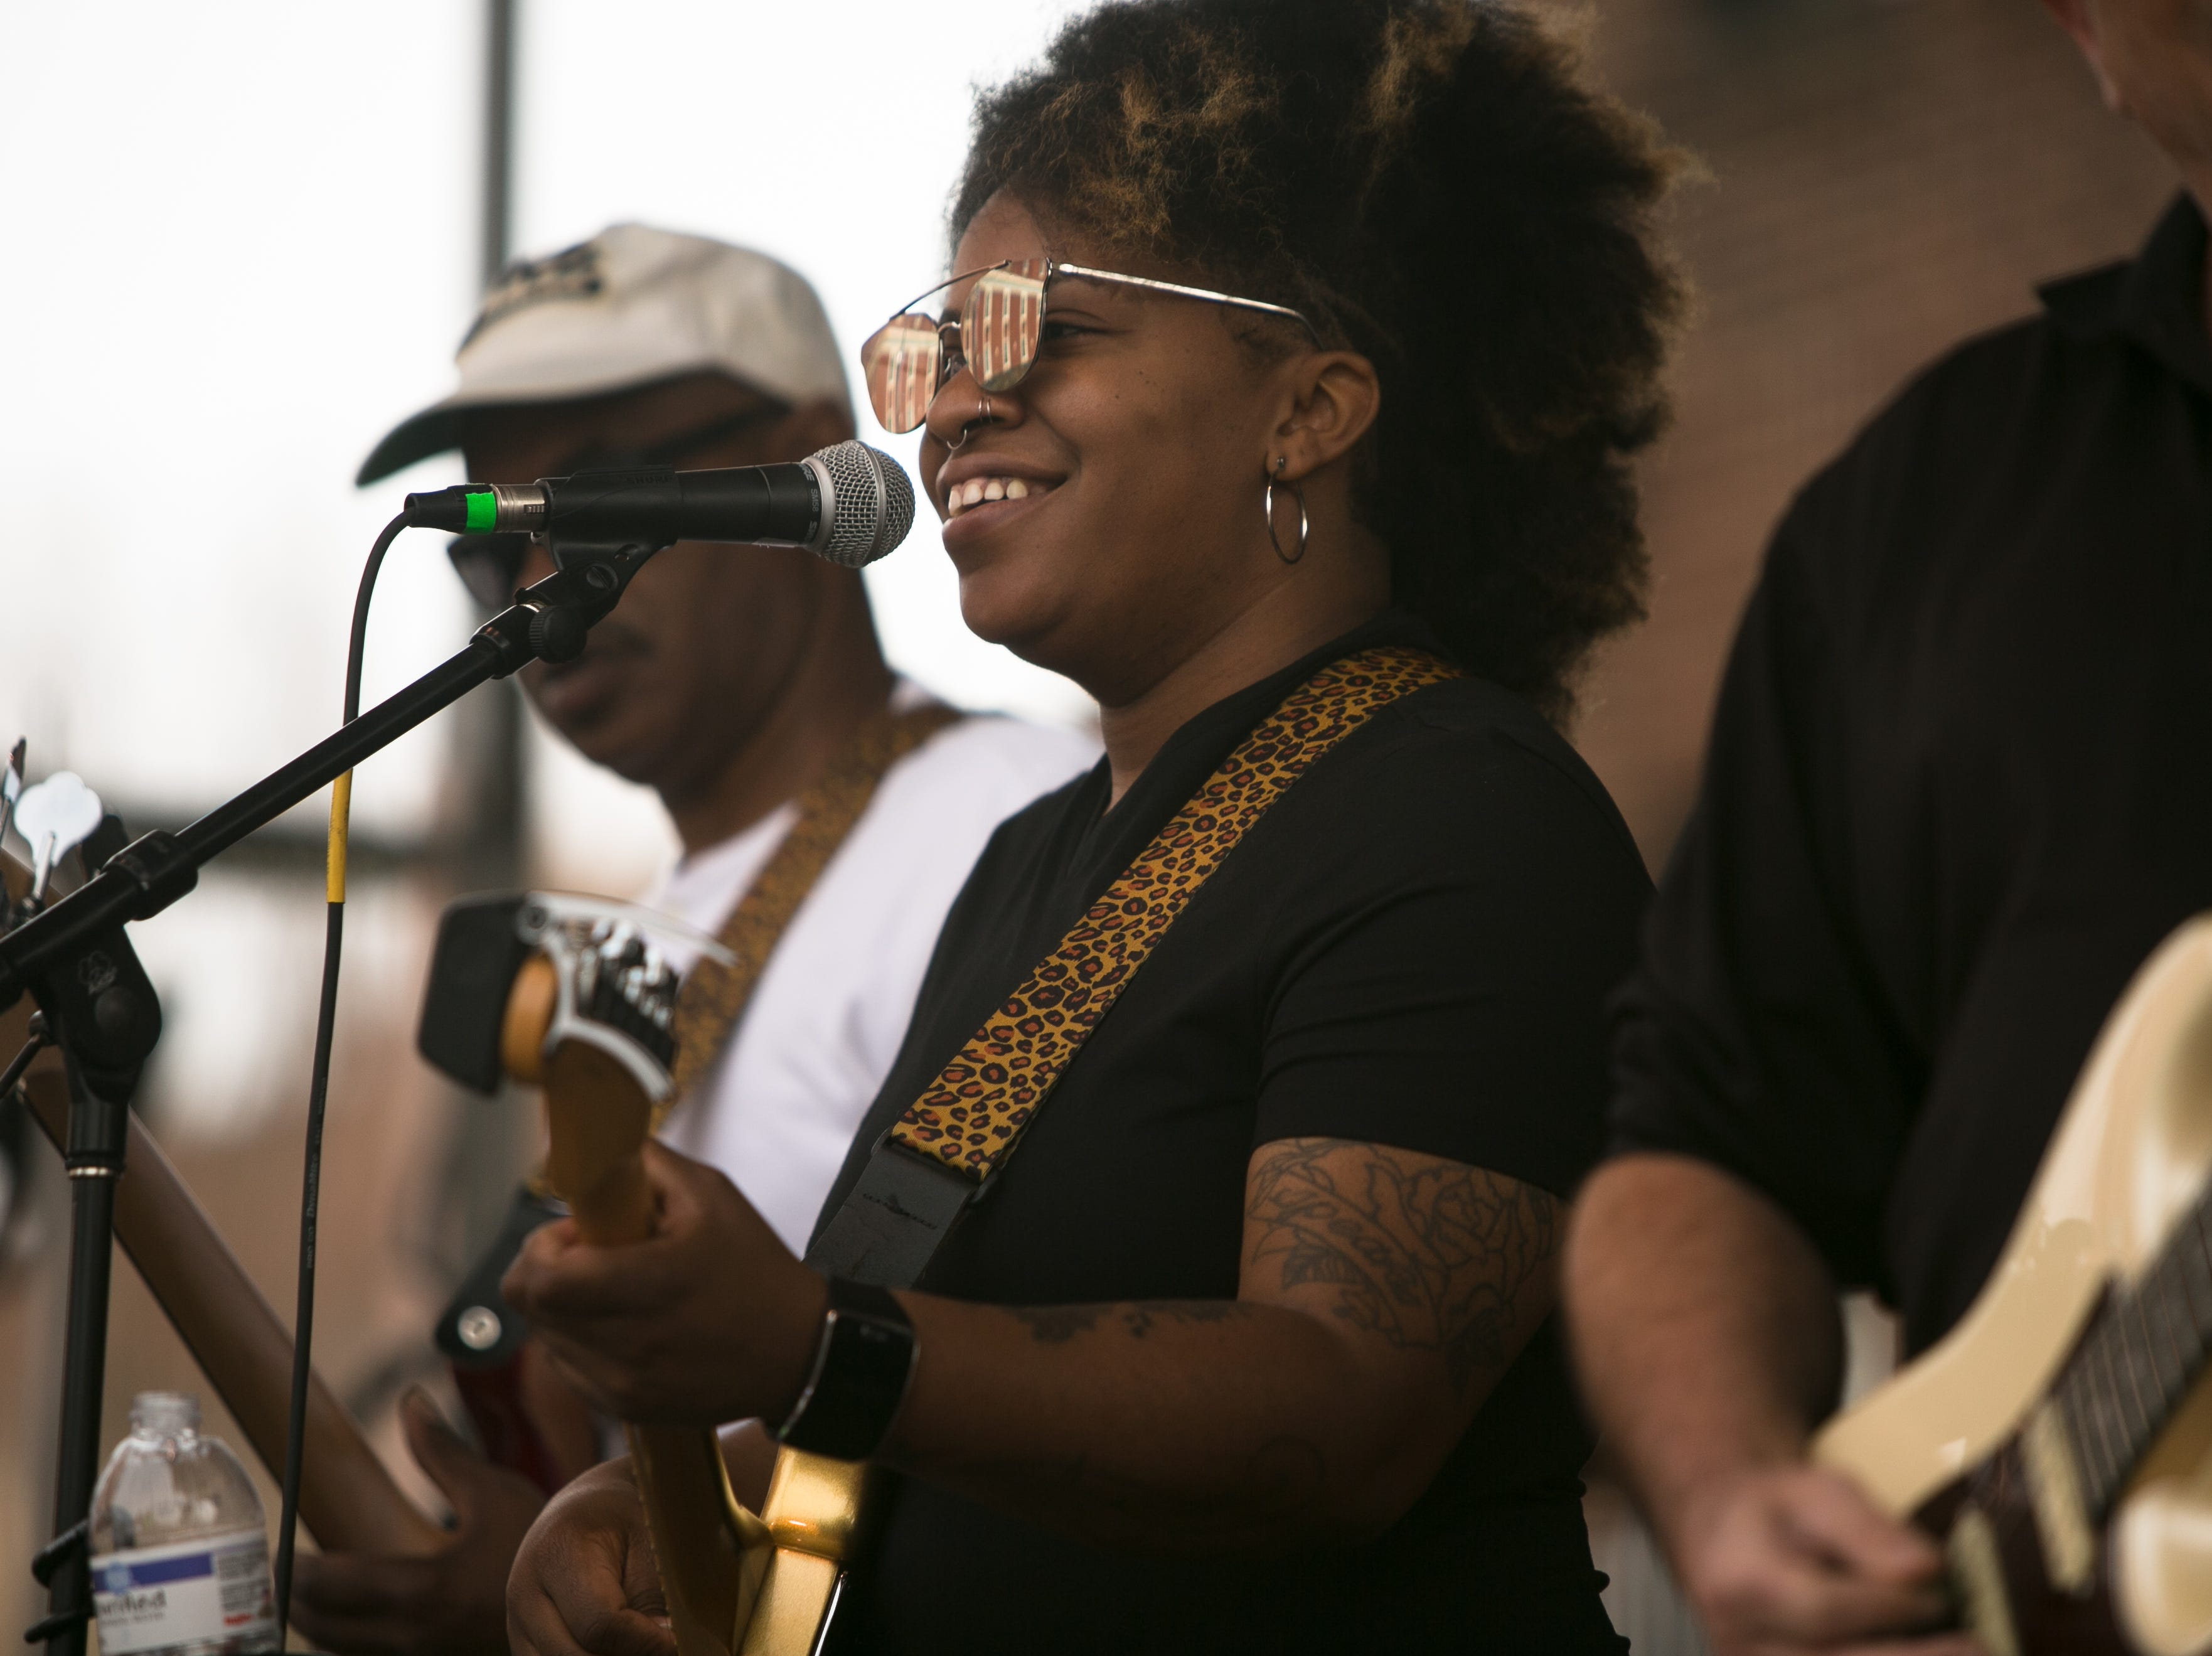 Lyric performs at the Ingles SoCon Fan Experience across the street from the U.S. Cellular Center at 68 Haywood St., in downtown Asheville, on March 10, 2019.